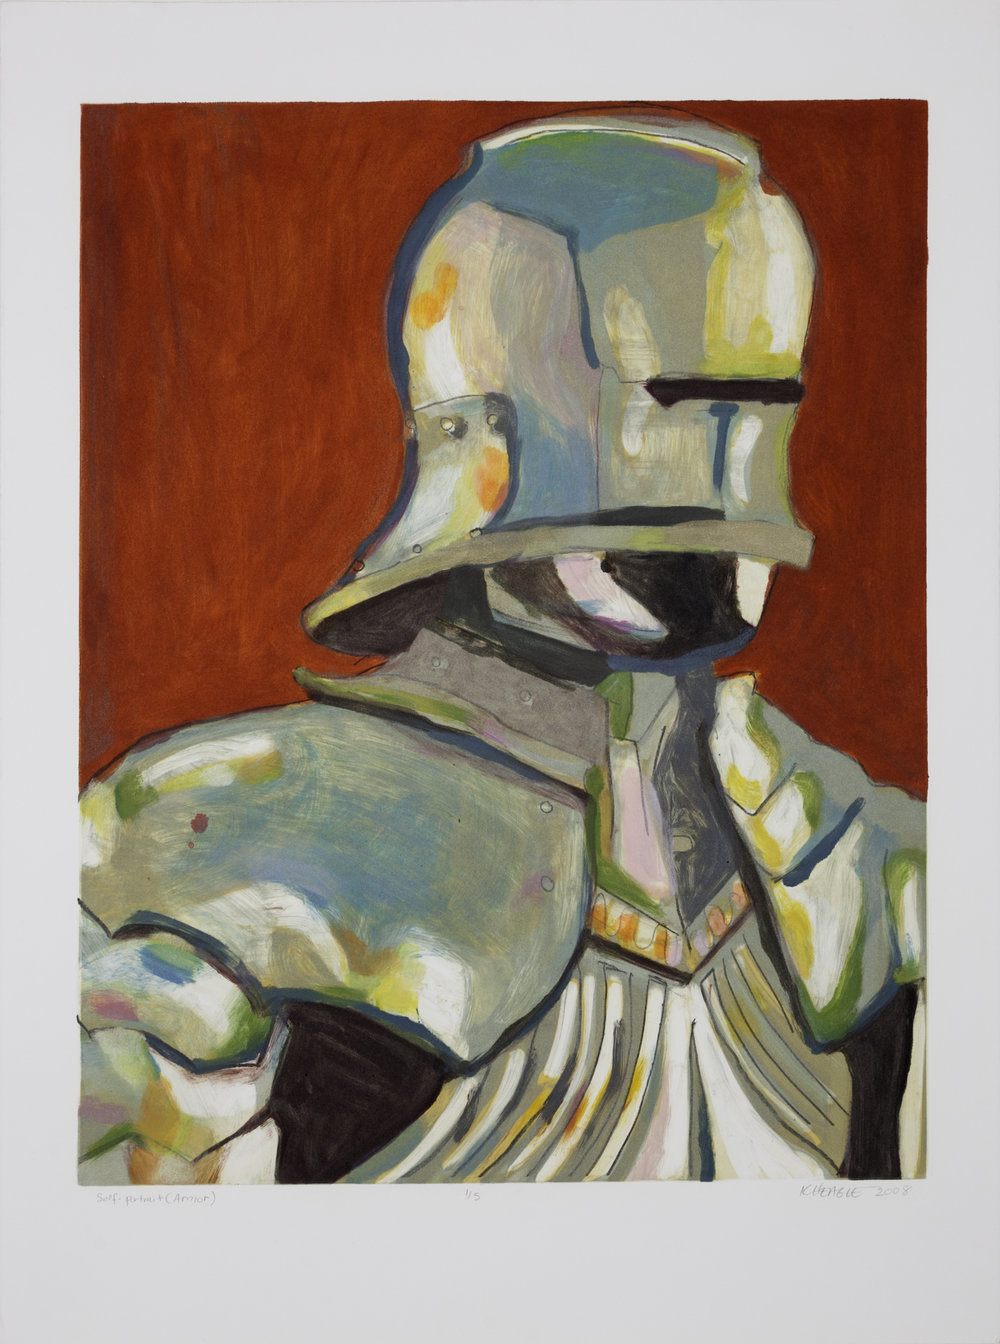 Self Portrait (Armor) (I) , 2008 Monotype Image size: 18.75 x 23.75 inches Paper size: 22 x 30 inches Series of 5